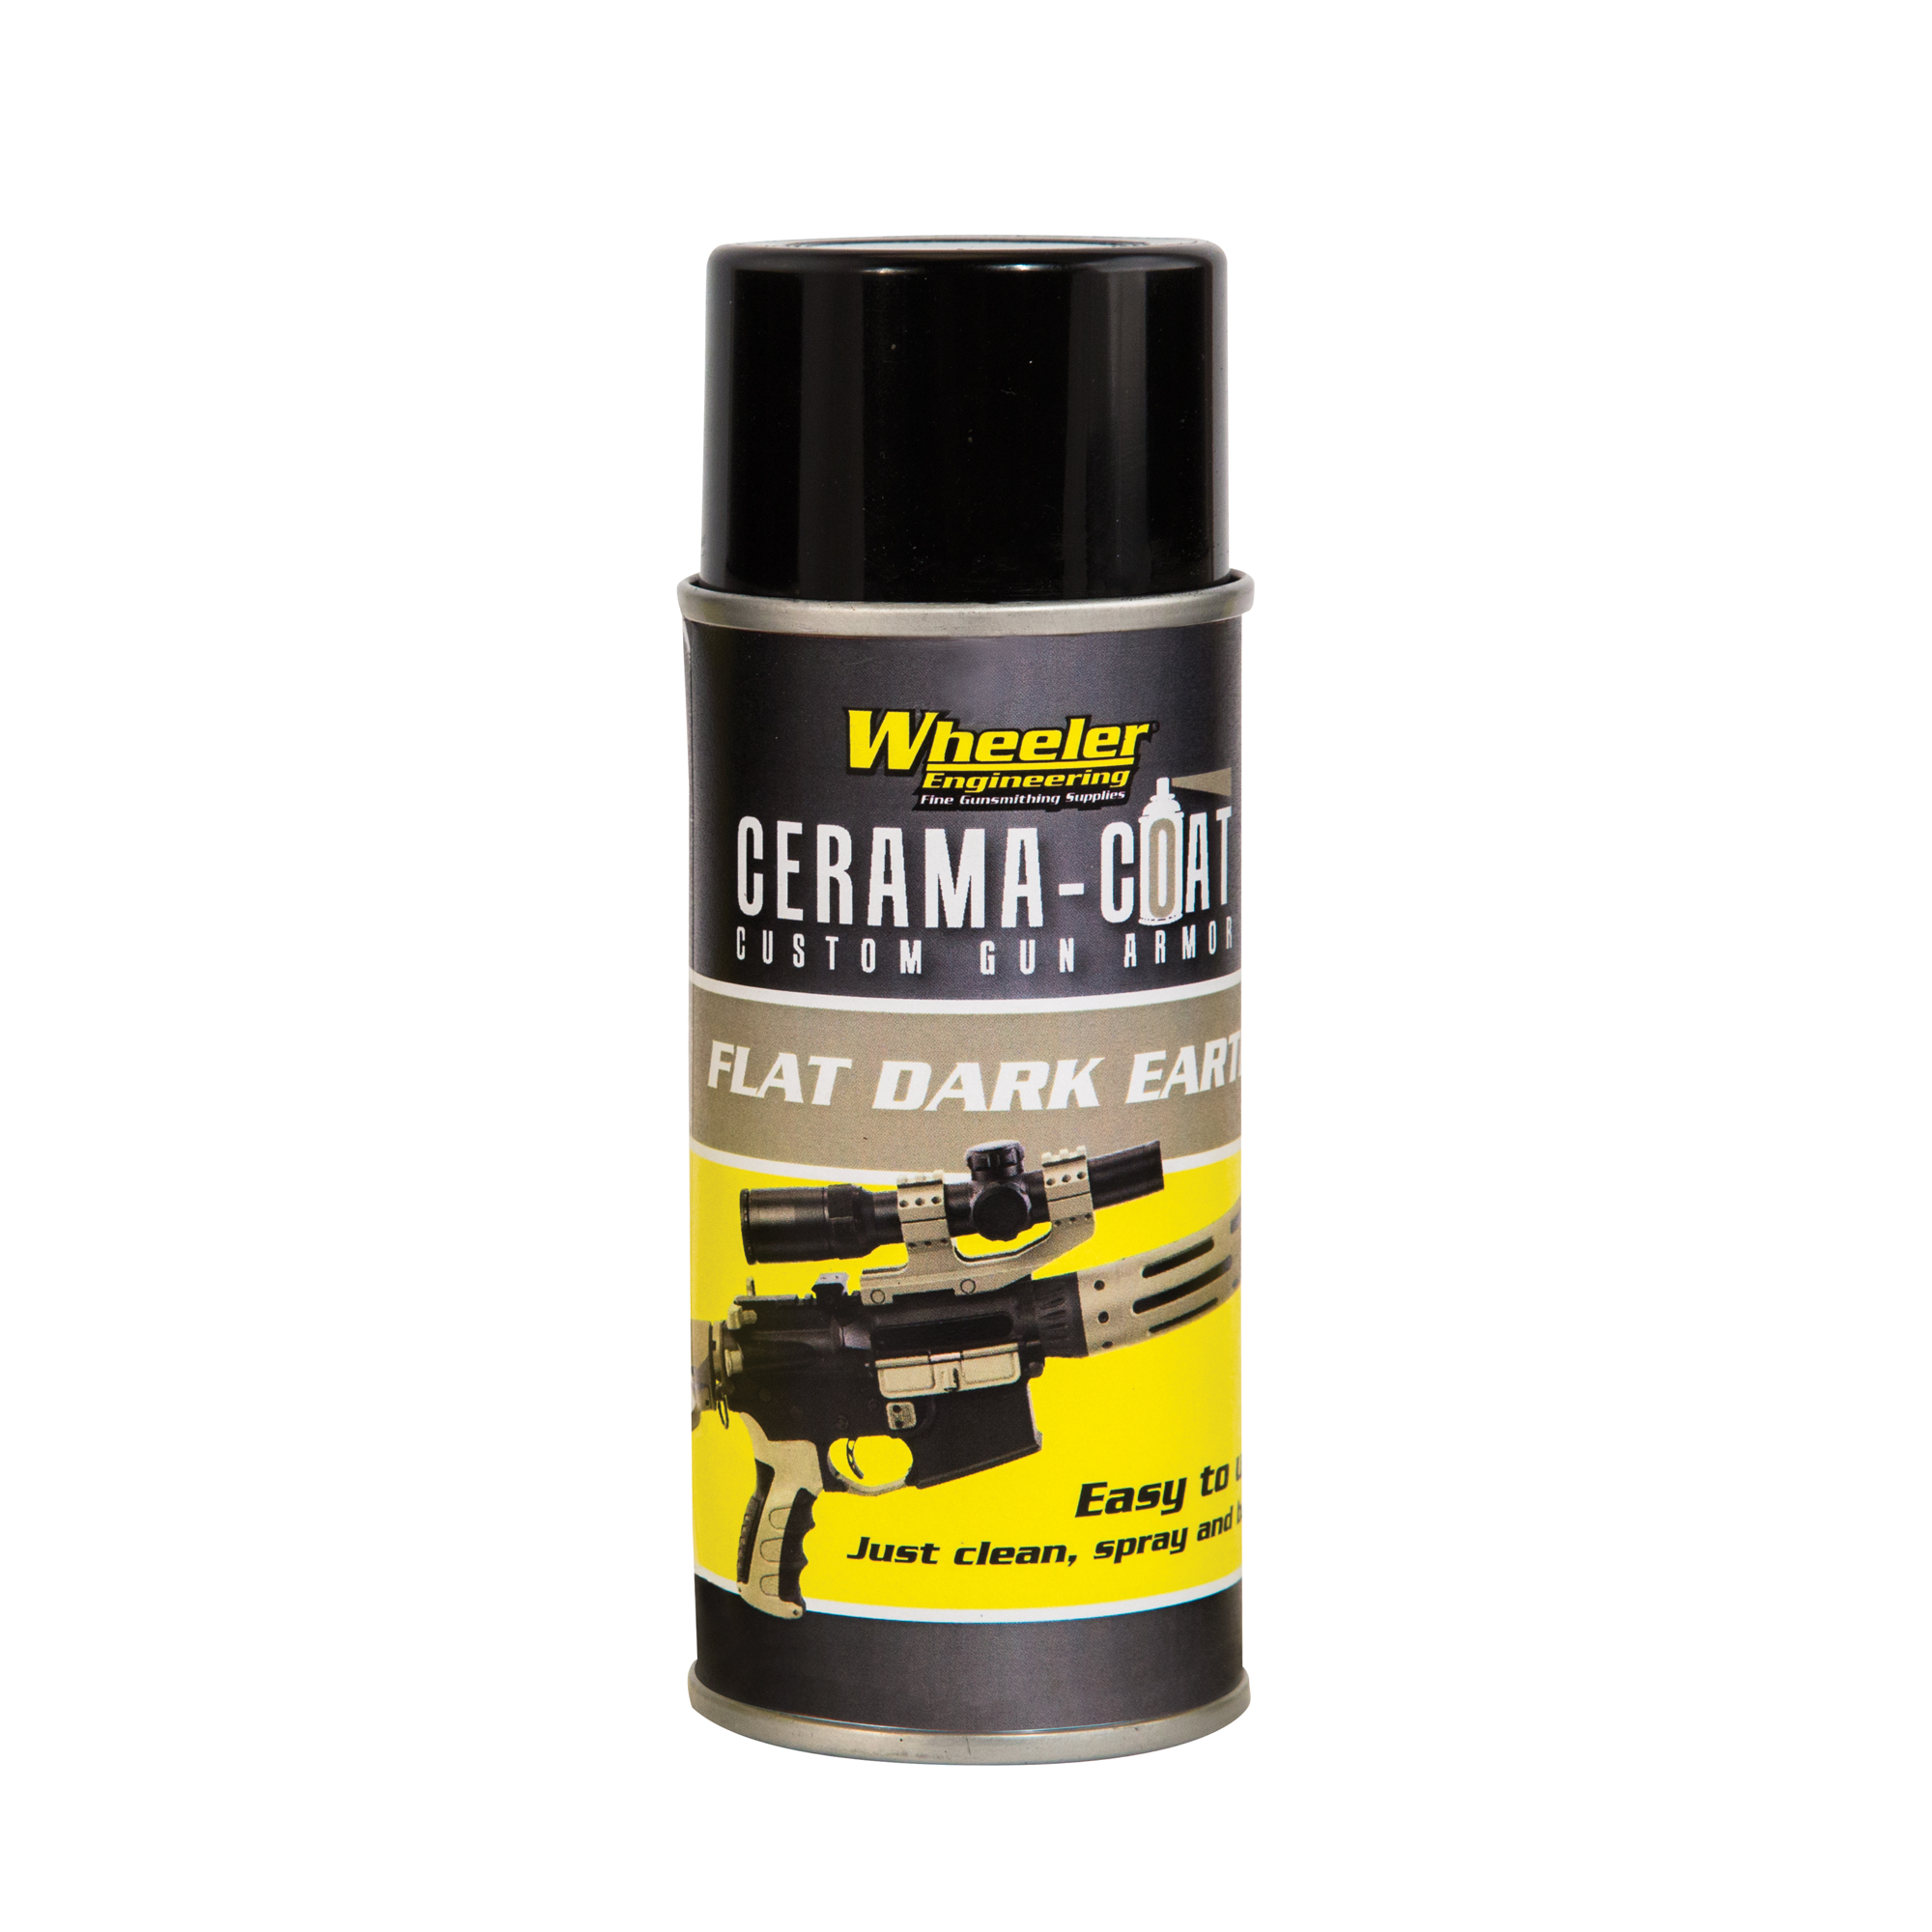 """Cerama-Coat(TM) is a specifically formulated finish for firearms that provides an extremely durable coating. The key to the super hard finish is ultra-fine ceramic molecules that actually crosslink and bond to the base material. A heating process after application forms the bond and hardens the finish. Bonds to ferrous metals"""" alloys"""" stainless steel and synthetics that can be heated to 200 degreeF. Can be applied over bare metal or existing blued"""" anodized or parkerized finish."""